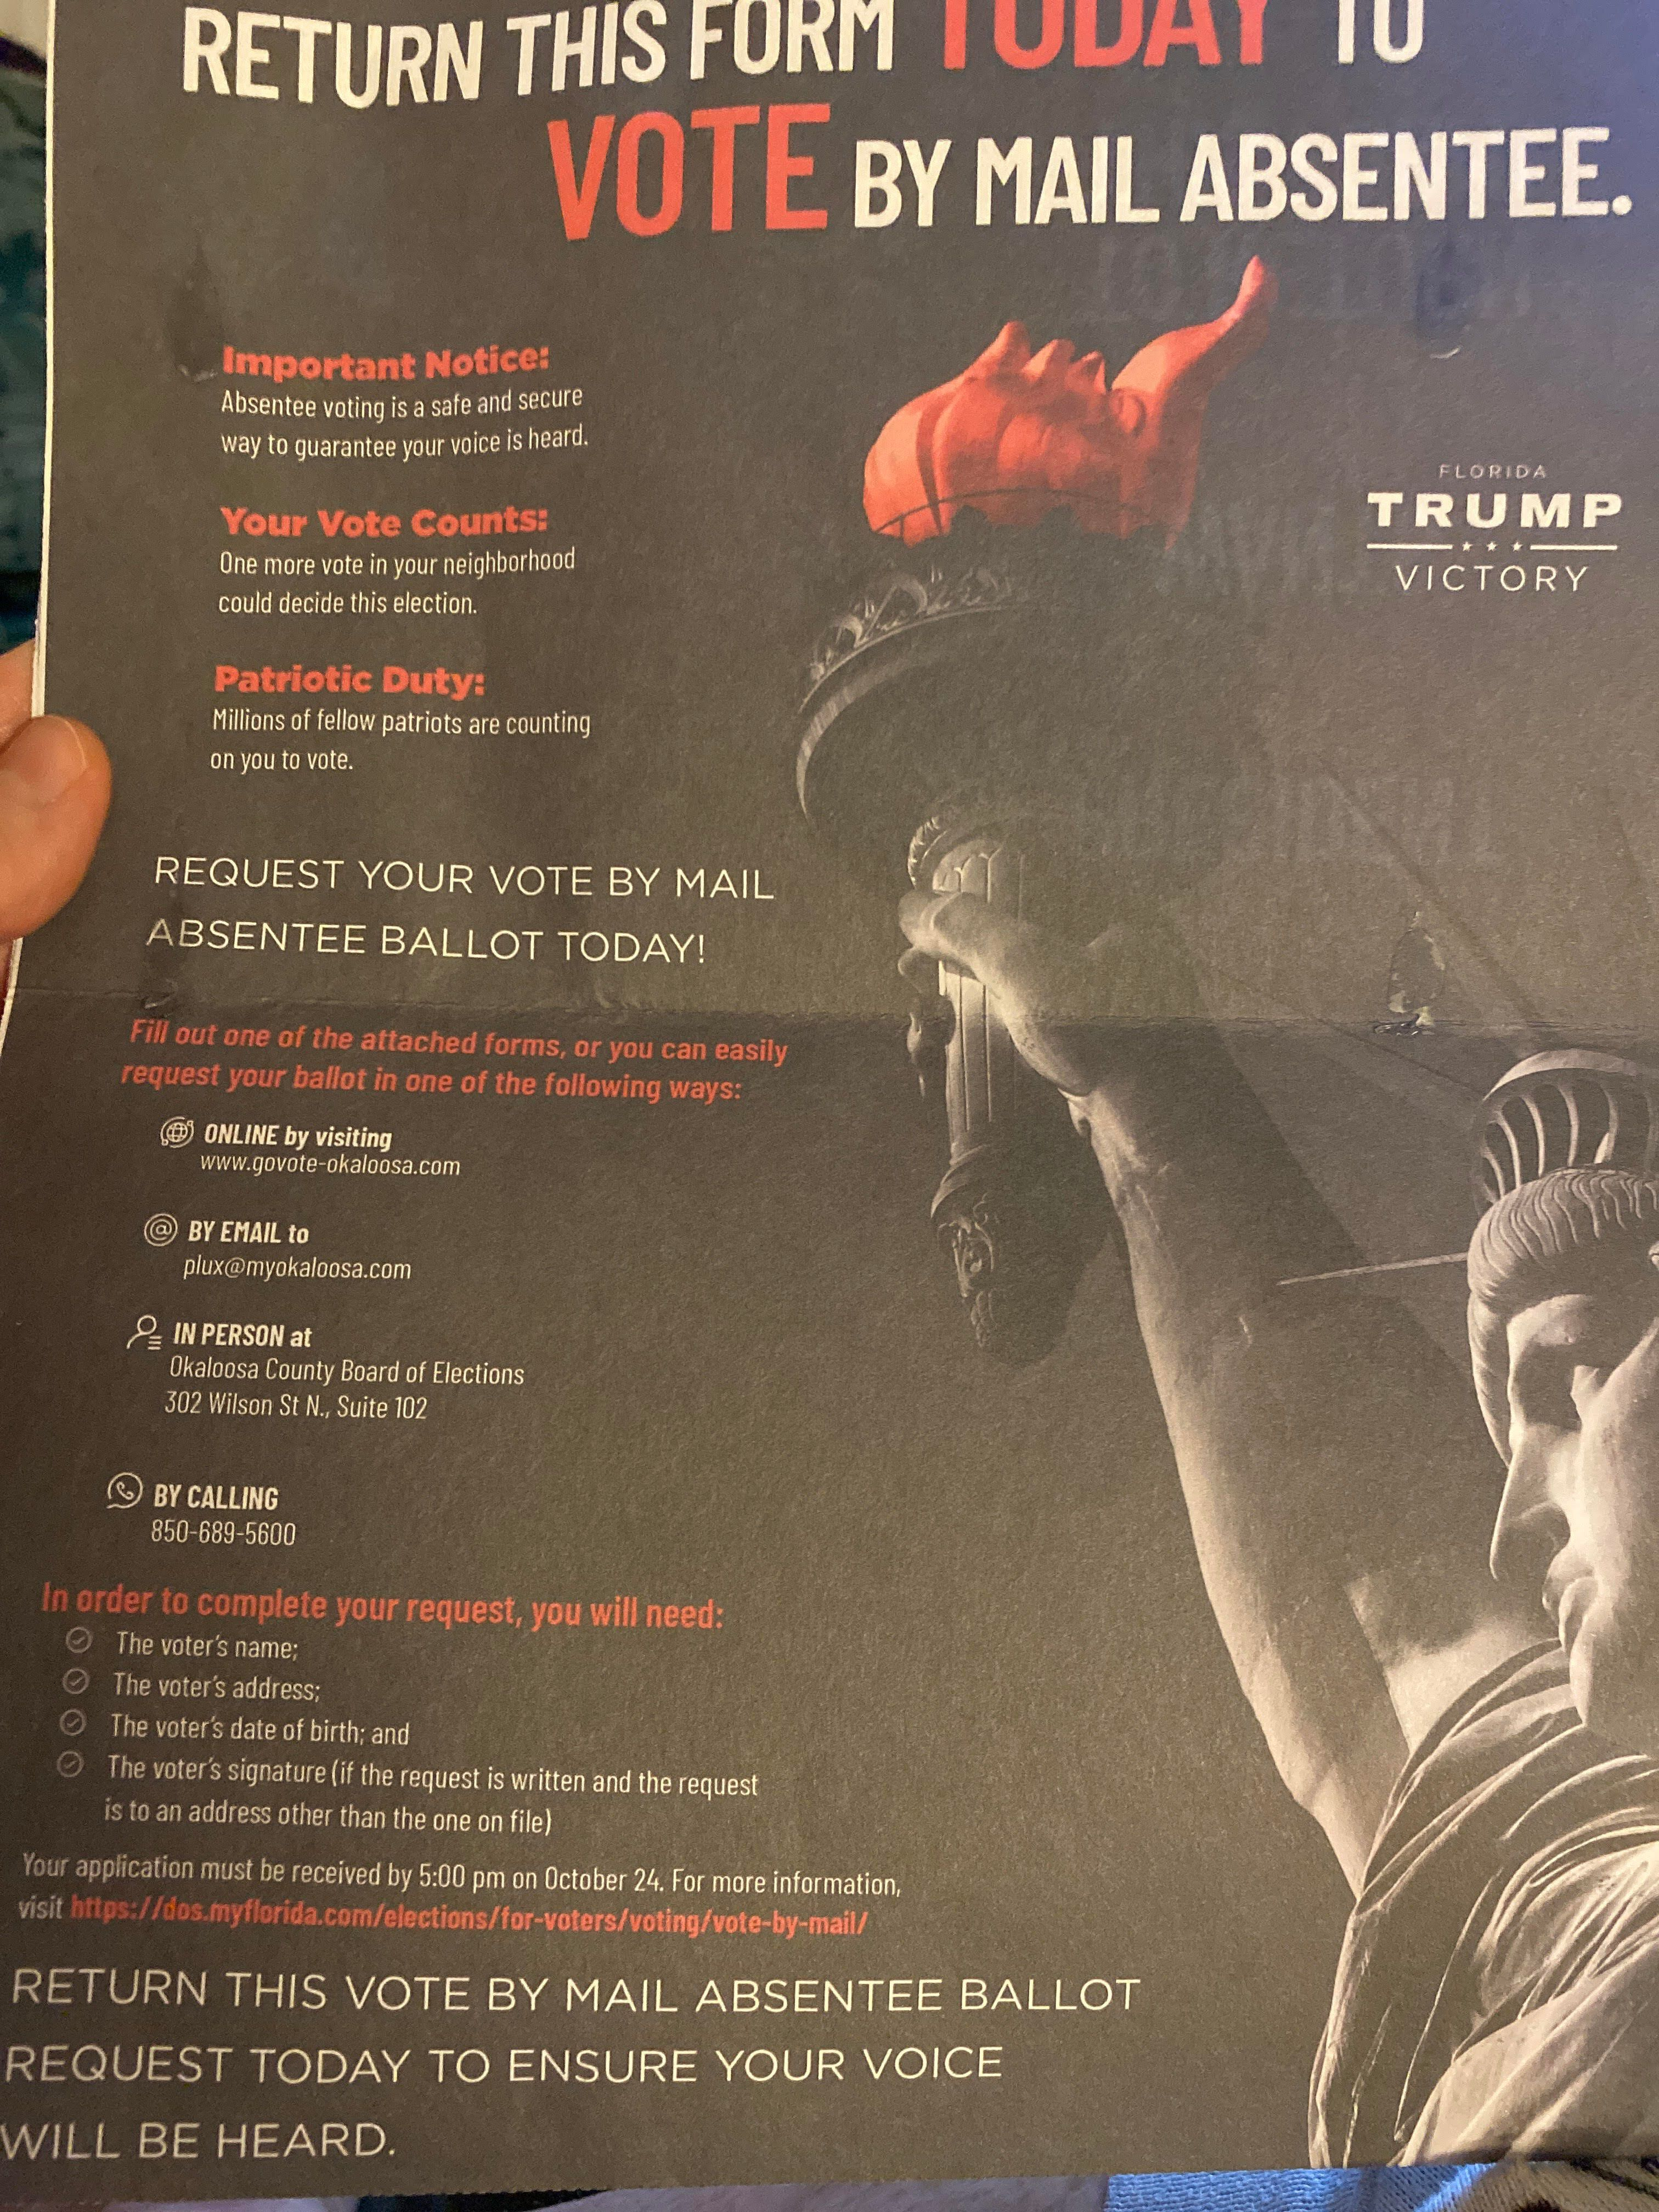 This absentee ballot request form went out to voters in Florida.